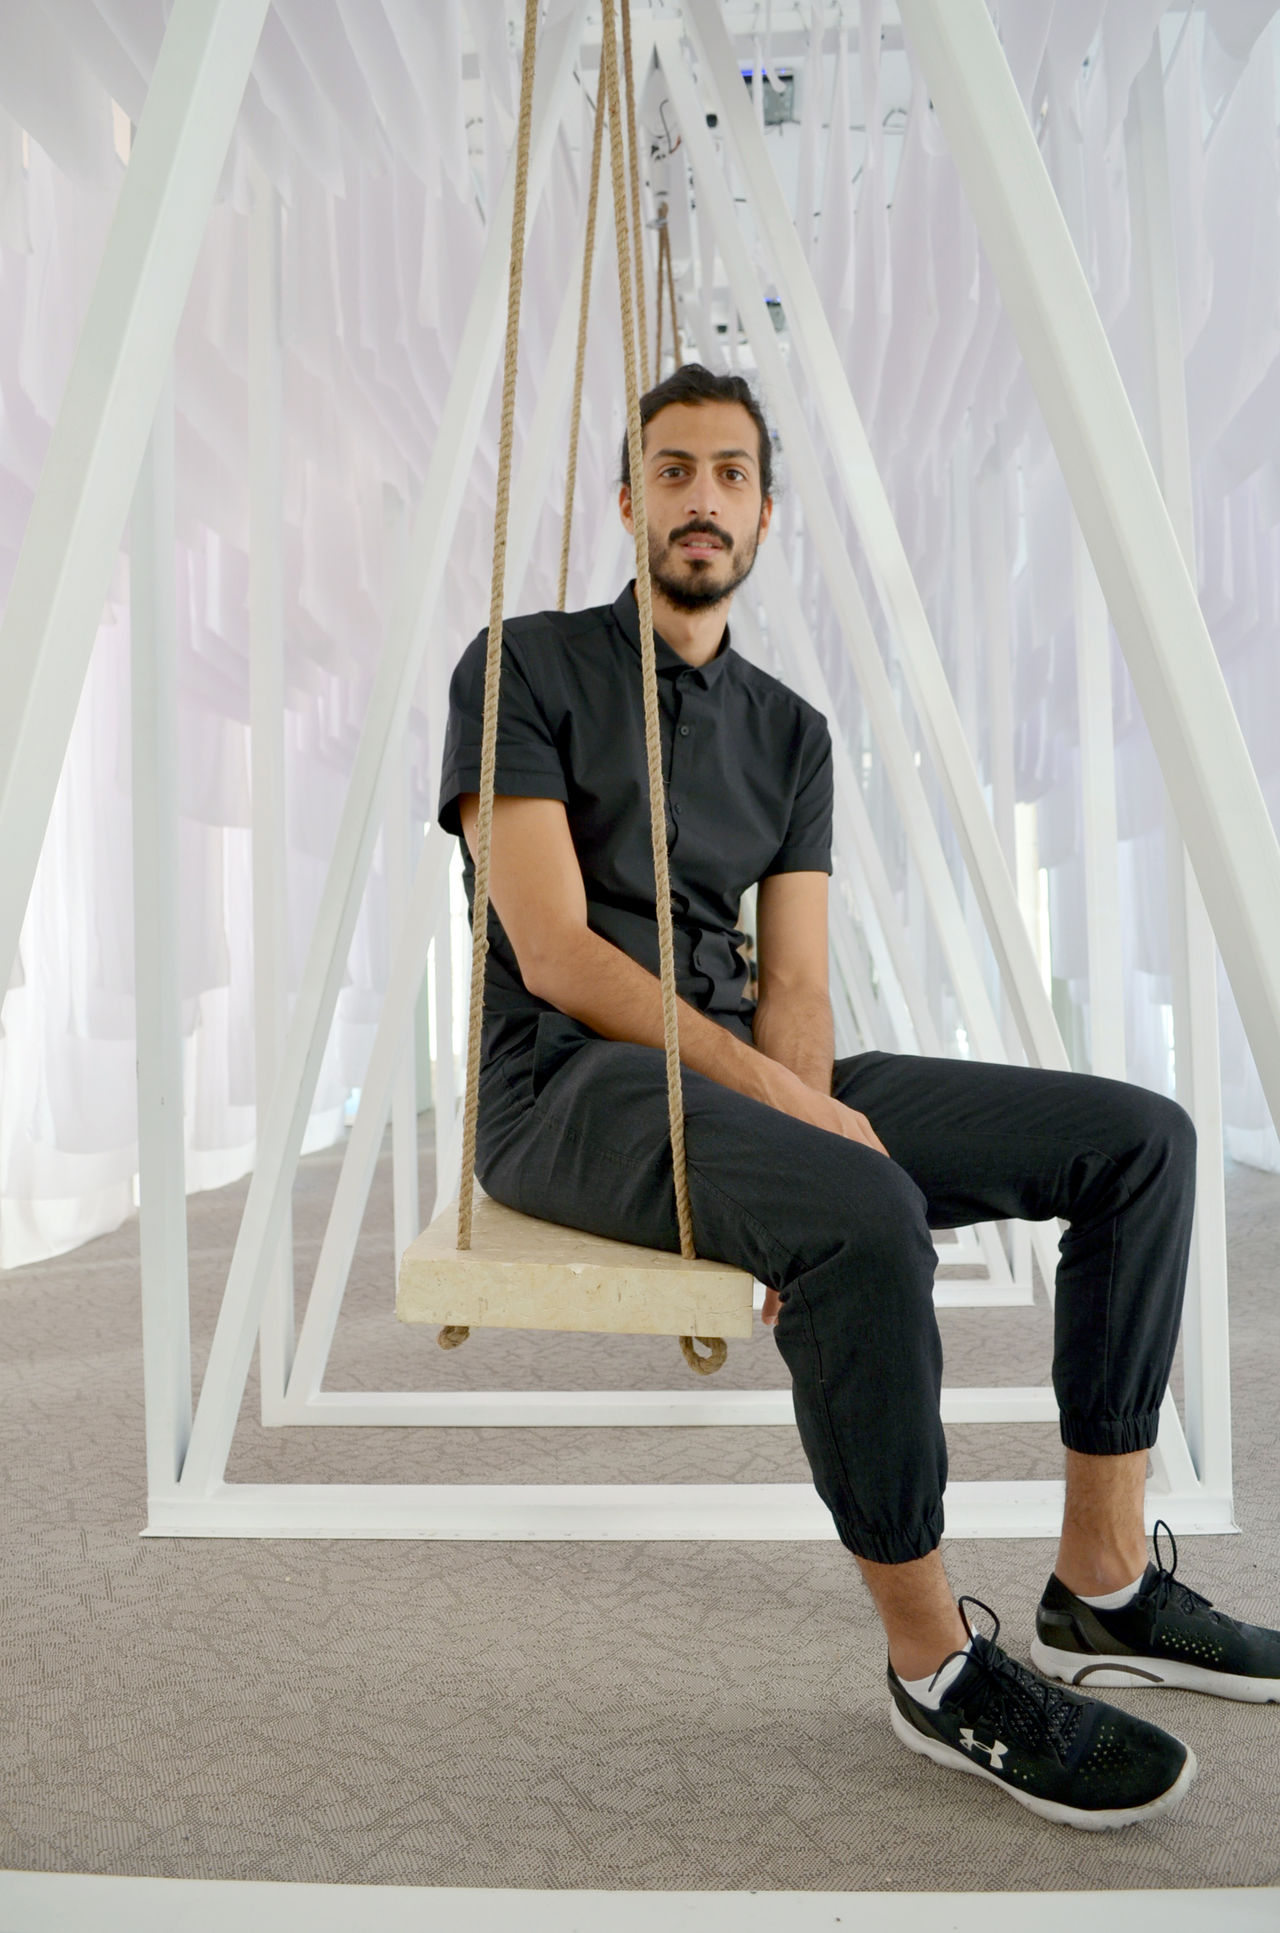 Man posing on a swing surrounded with white drapes in an art installation Adult Architecture Arcitecture Arcitecturephotography Art Installation Beard Casual Clothing Curator Curatorschoice Day Design Dubai Design Week Full Length Looking At Camera Male Model One Man Only One Person Portrait Sitting Sneakers Stone Stone Material White Drapes UnderArmour